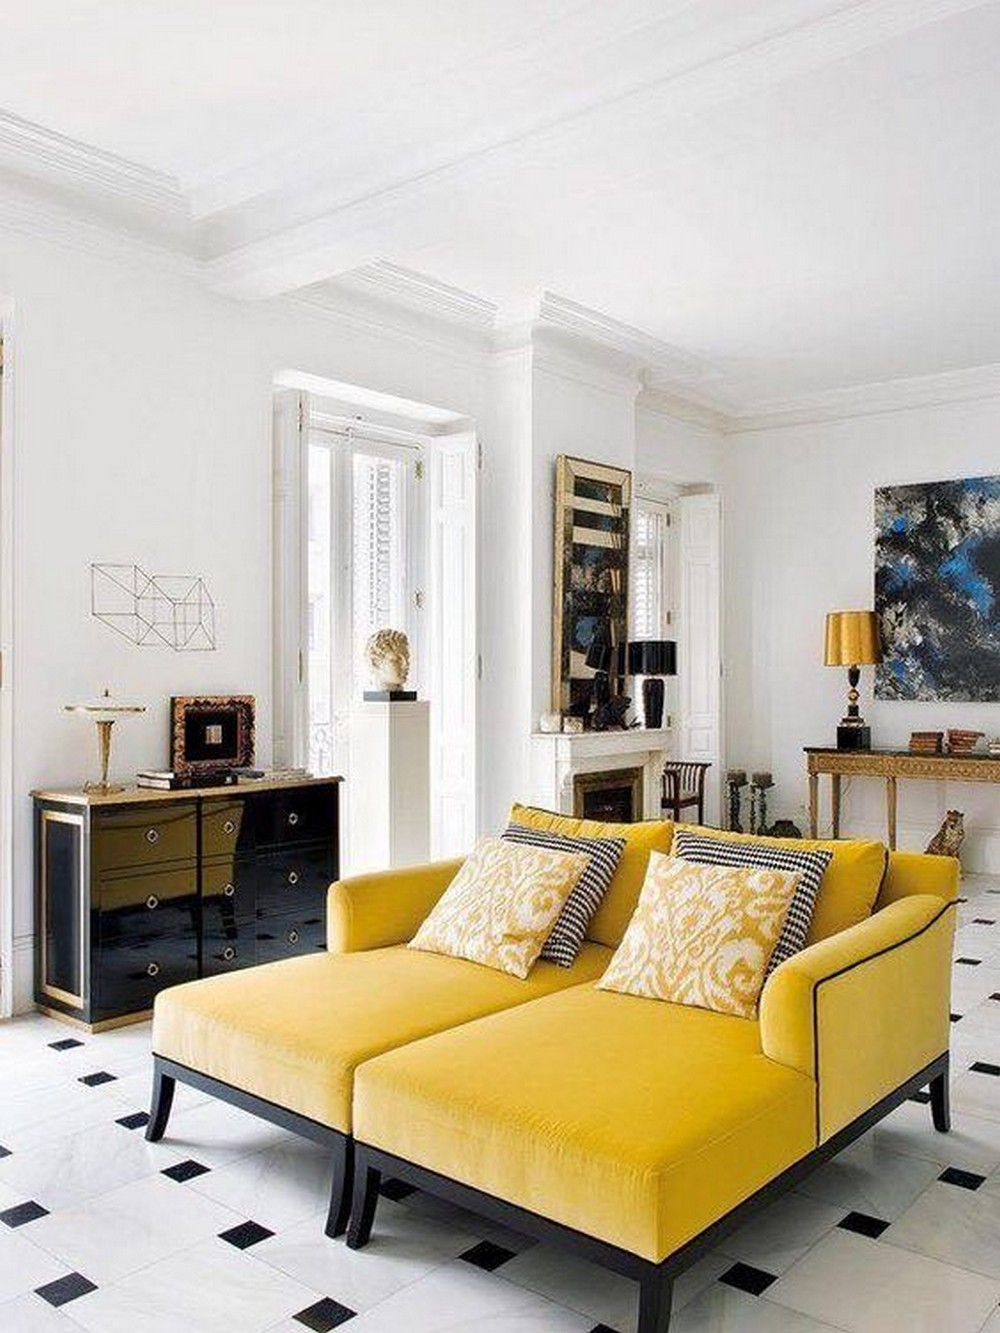 Yellow Mellow: feel inspired by this 2019 interior design trend Yellow Mellow Yellow Mellow: feel inspired by this 2019 interior design trend 8e8b4b6bf10b893b4bc5ef1083501d57